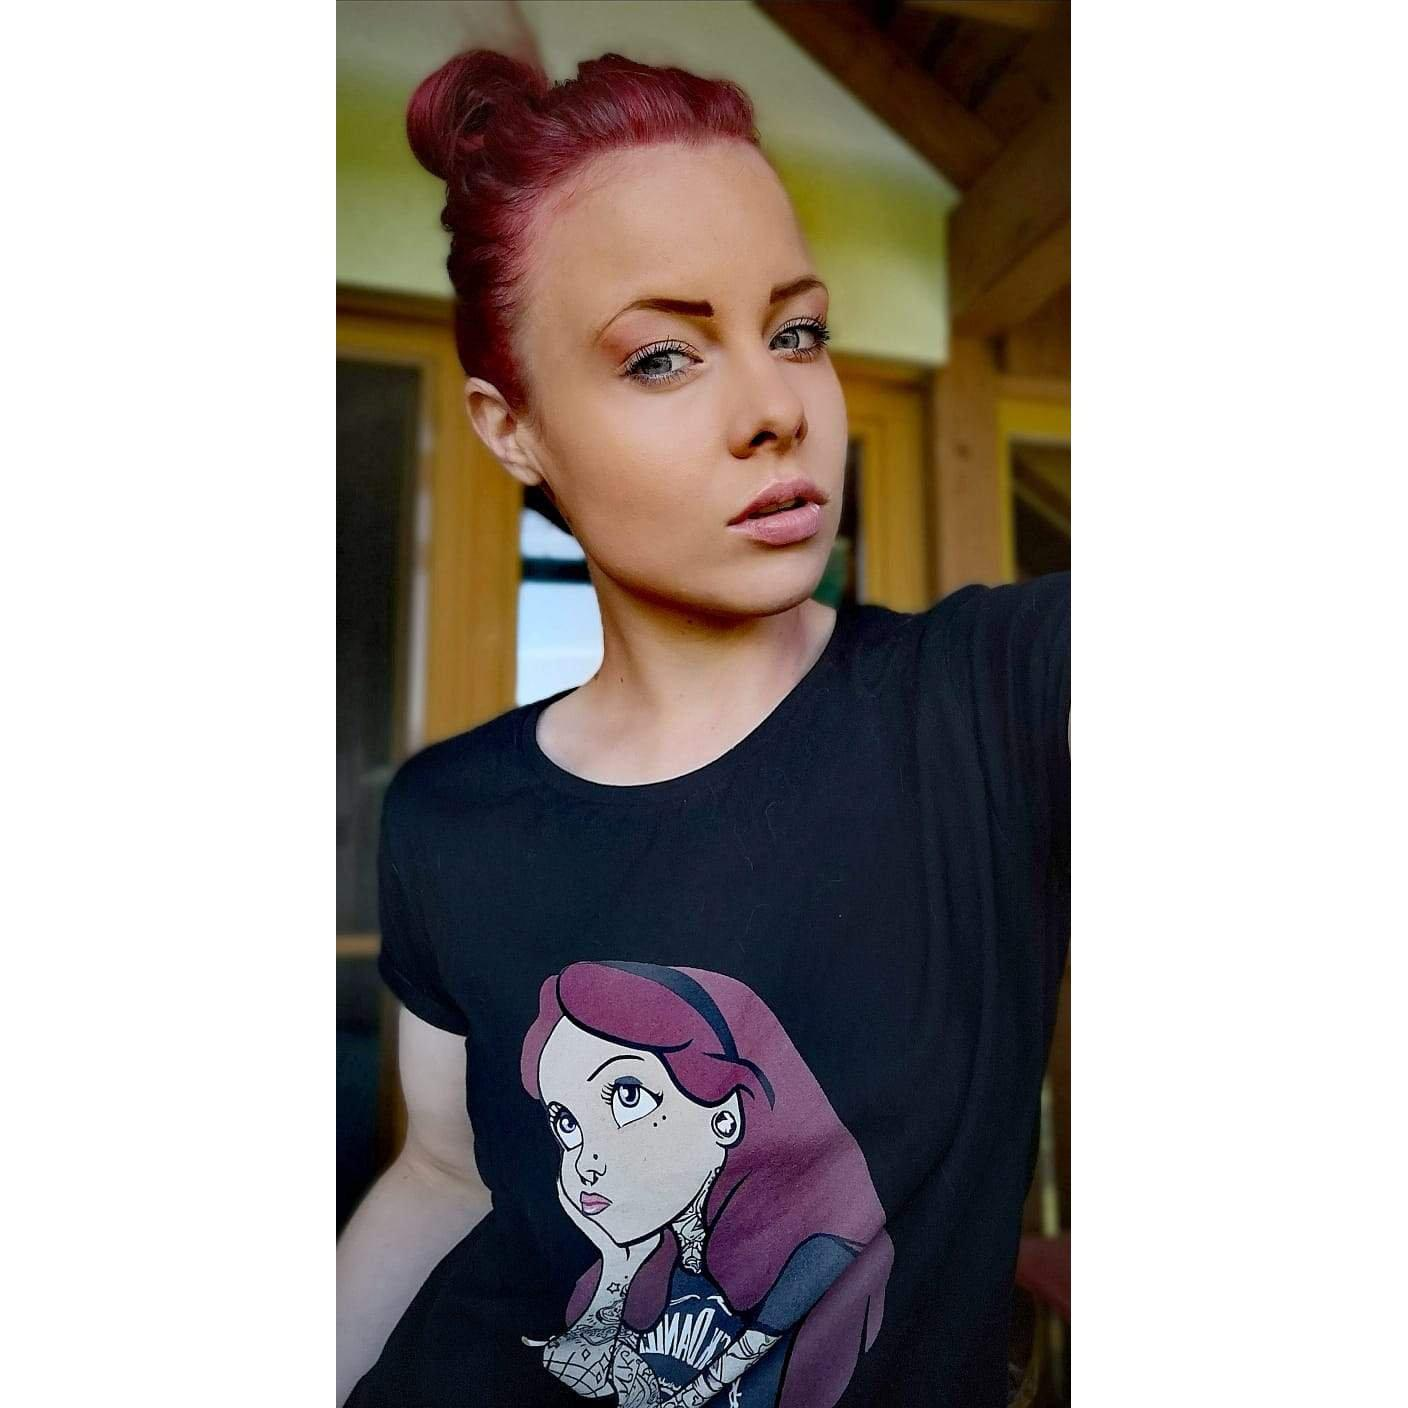 Alice Indie Swag Red Hair - Rave On!® - Damenshirt Damen Basic T-Shirt - Rave On!® der Club & Techno Szene Shop für Coole Junge Mode Streetwear Style & Fashion Outfits + Sexy Festival 420 Stuff